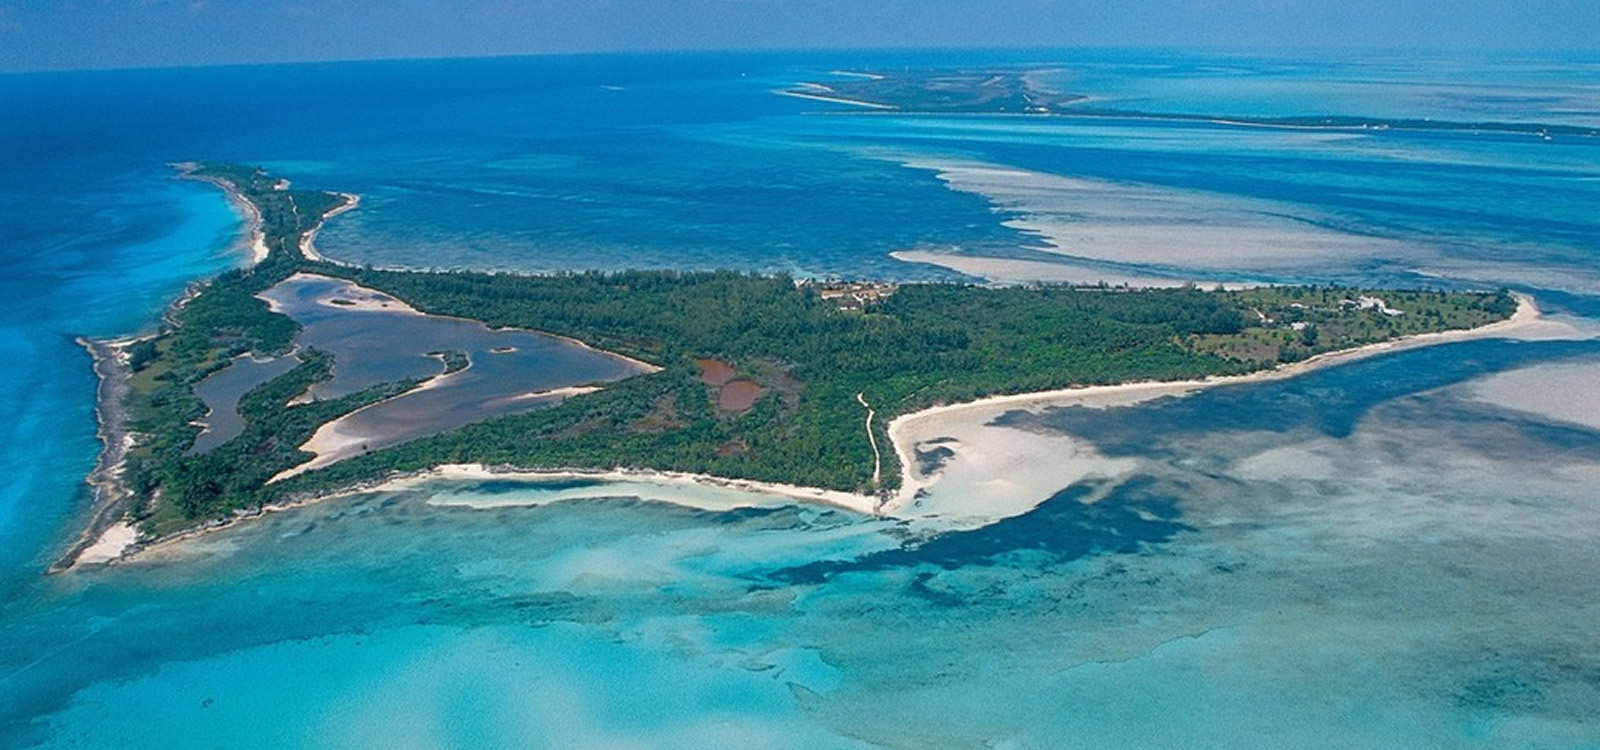 250 Acre Private Island For Sale Berry Islands Bahamas 7th Heaven Properties